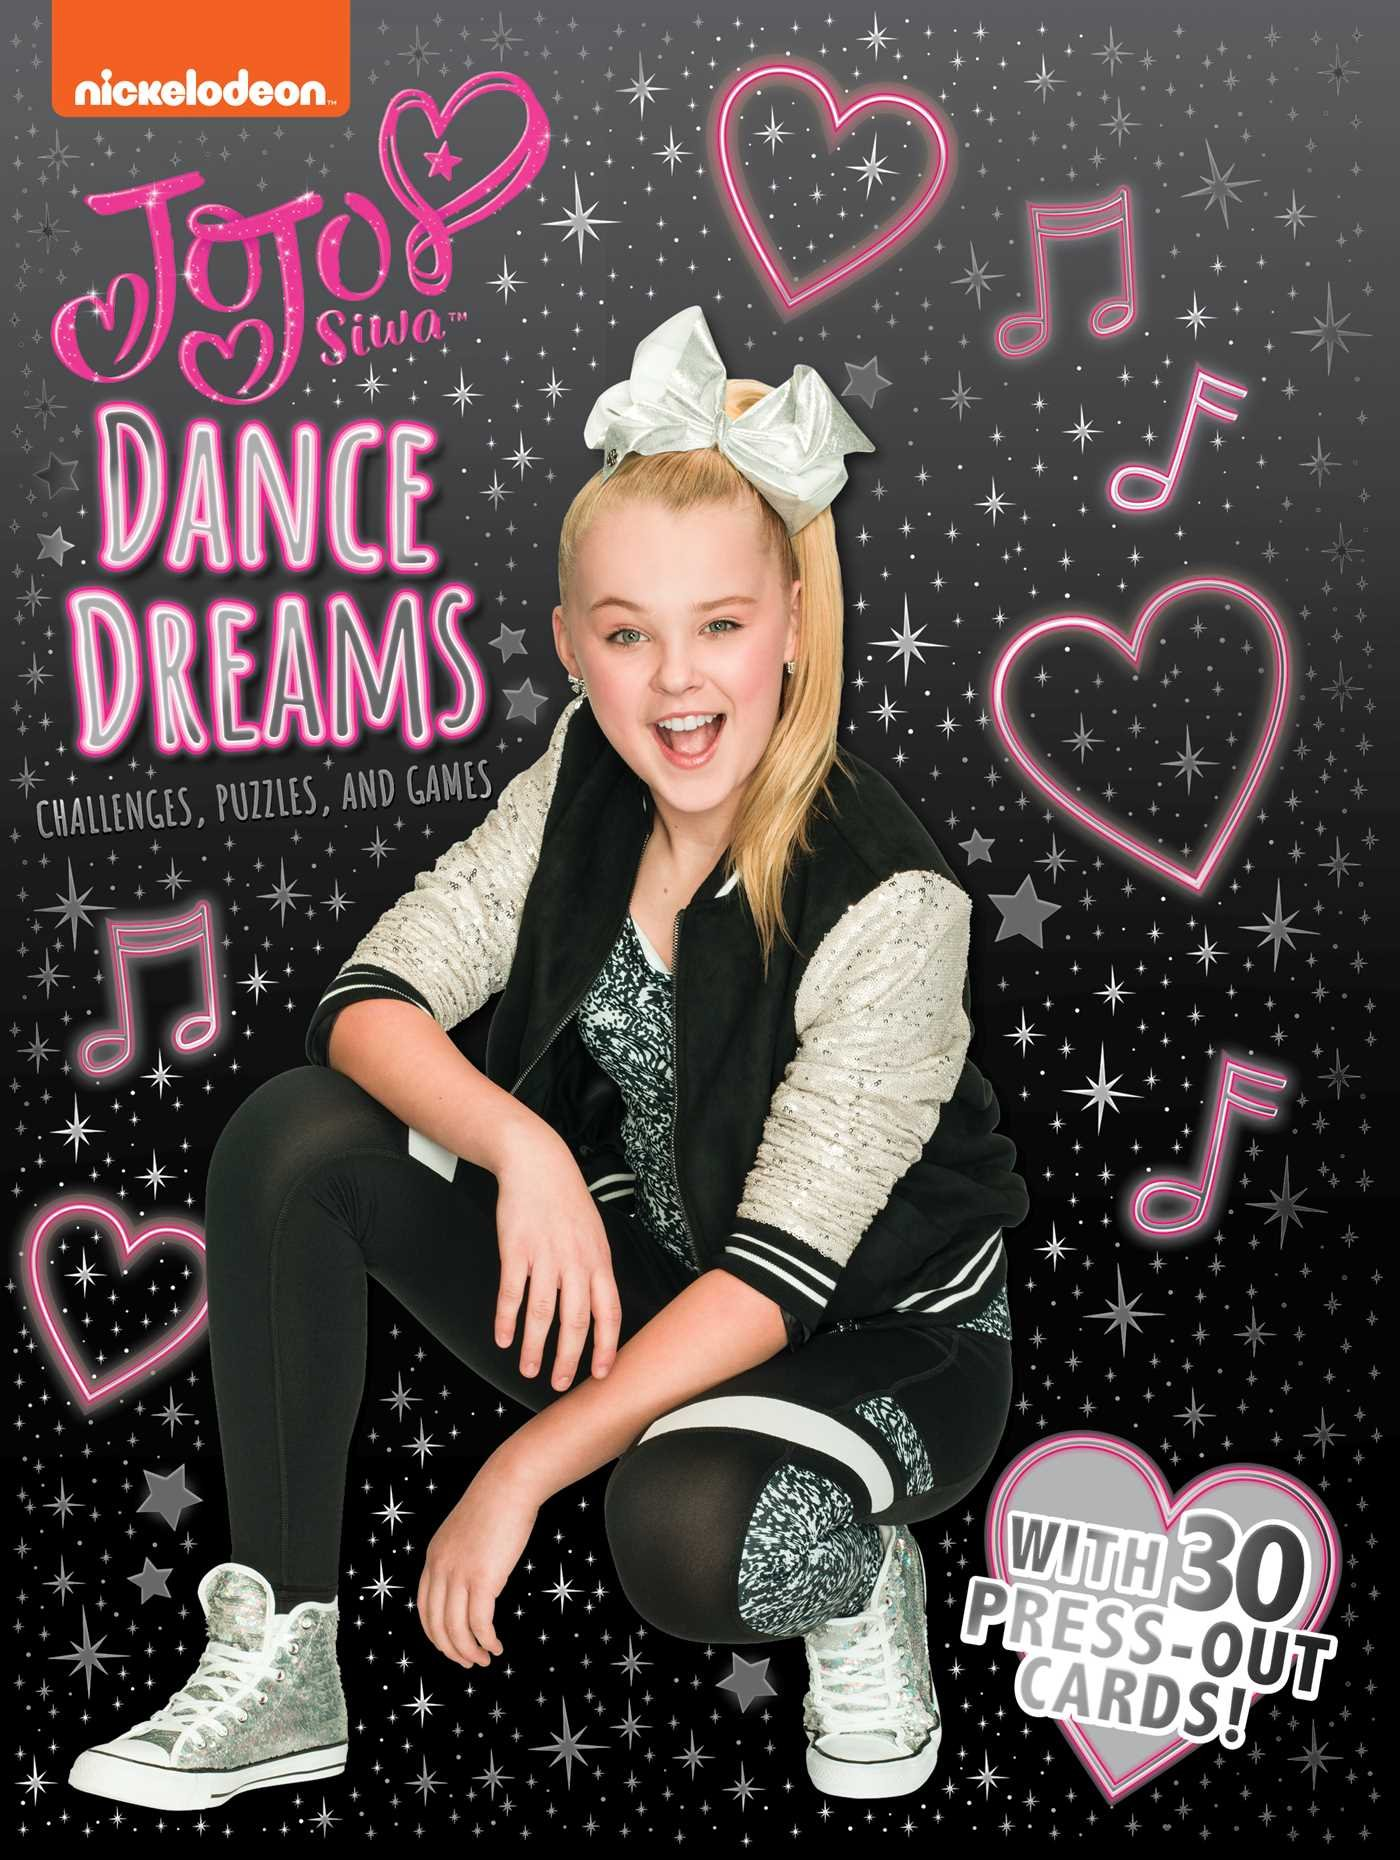 Dance Dreams: Challenges, Puzzles, and Games (JoJo Siwa)